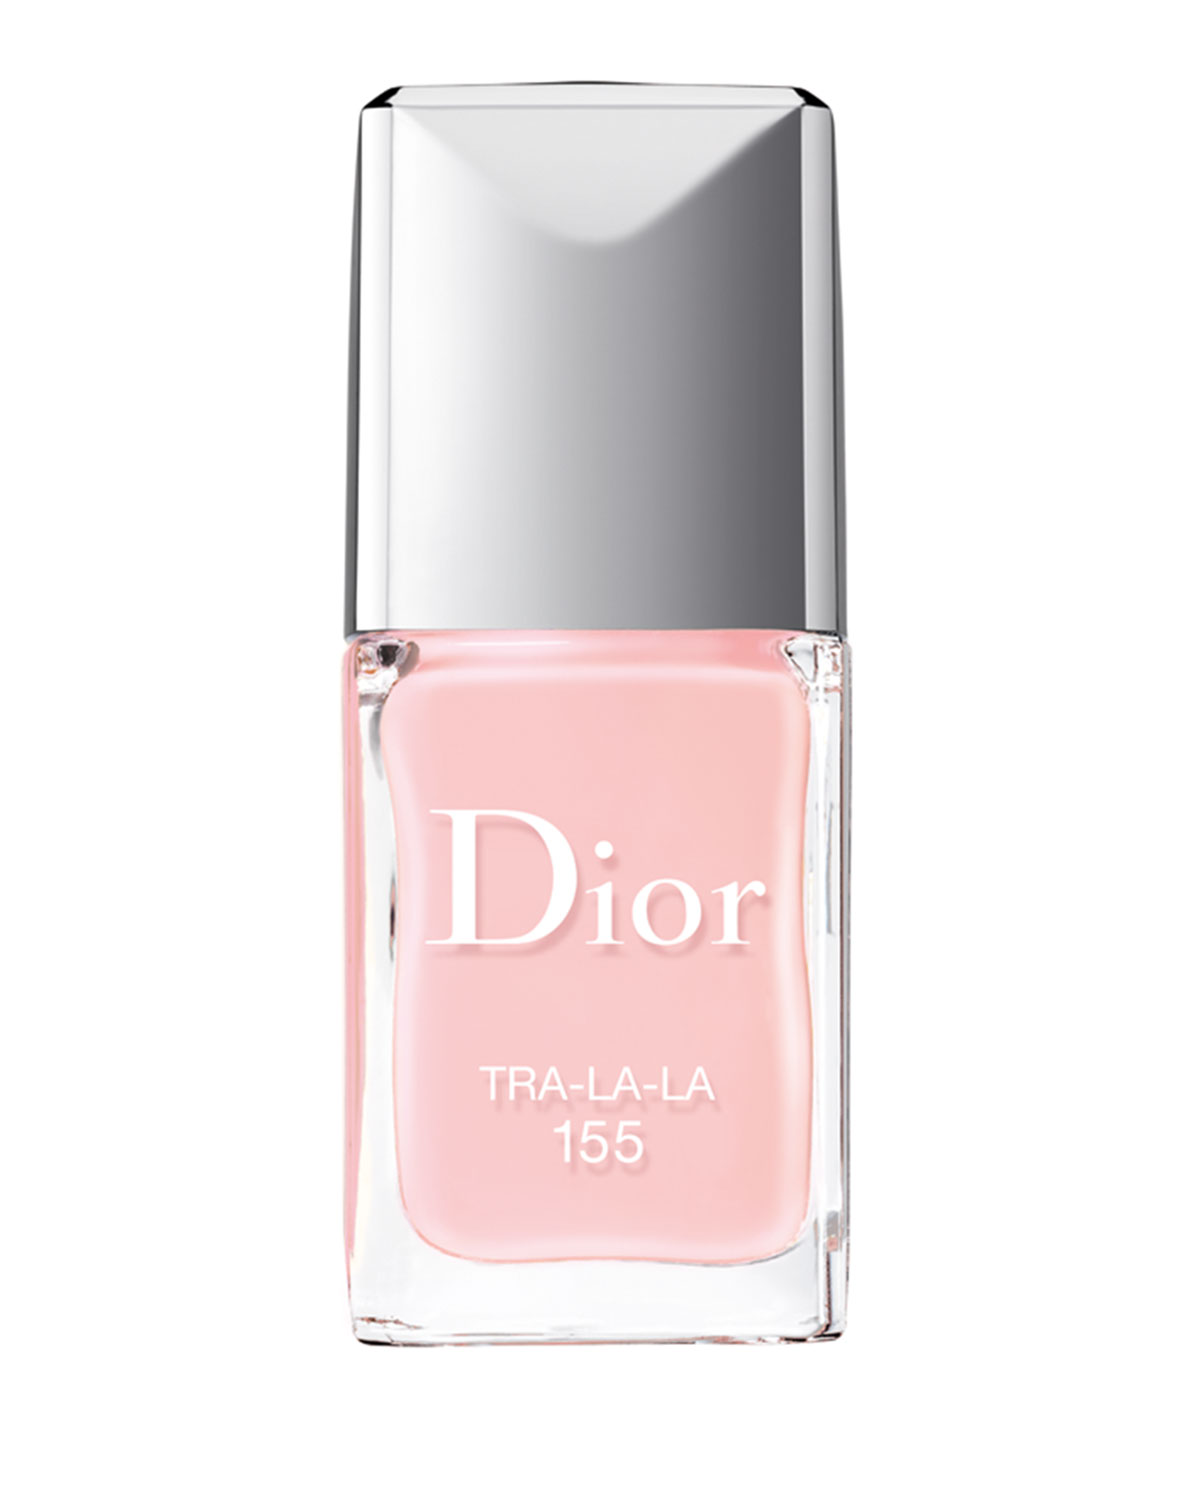 Vernis Couture Color, Gel Shine & Long Wear Nail Lacquer 2017 Instyle Award Winner, 108 Muget